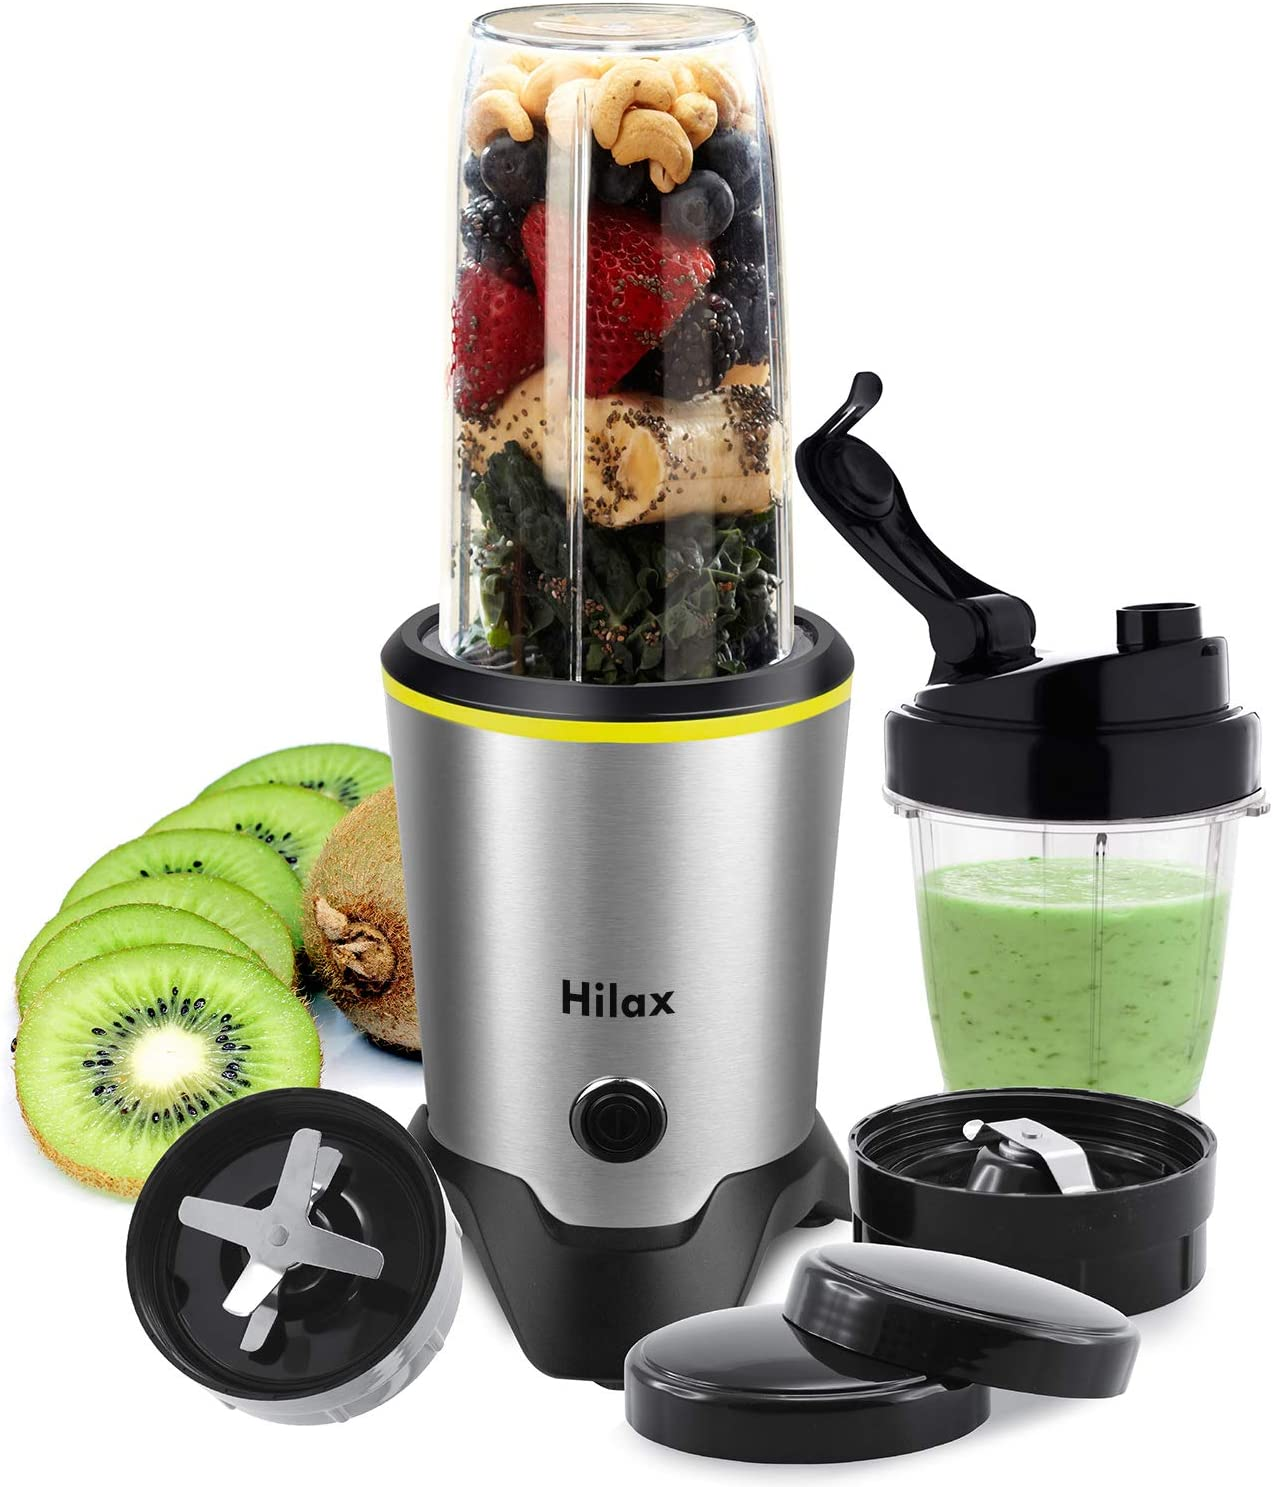 Personal Blender, Hilax 1000W Personal Smoothie Blender Coffee Grinder with 2-Set Blades for Shakes, Fruits, Baby Food, Vegetables and Beans, Tritan BPA-Free Blender Bottle, High-Speed Blender Juicers